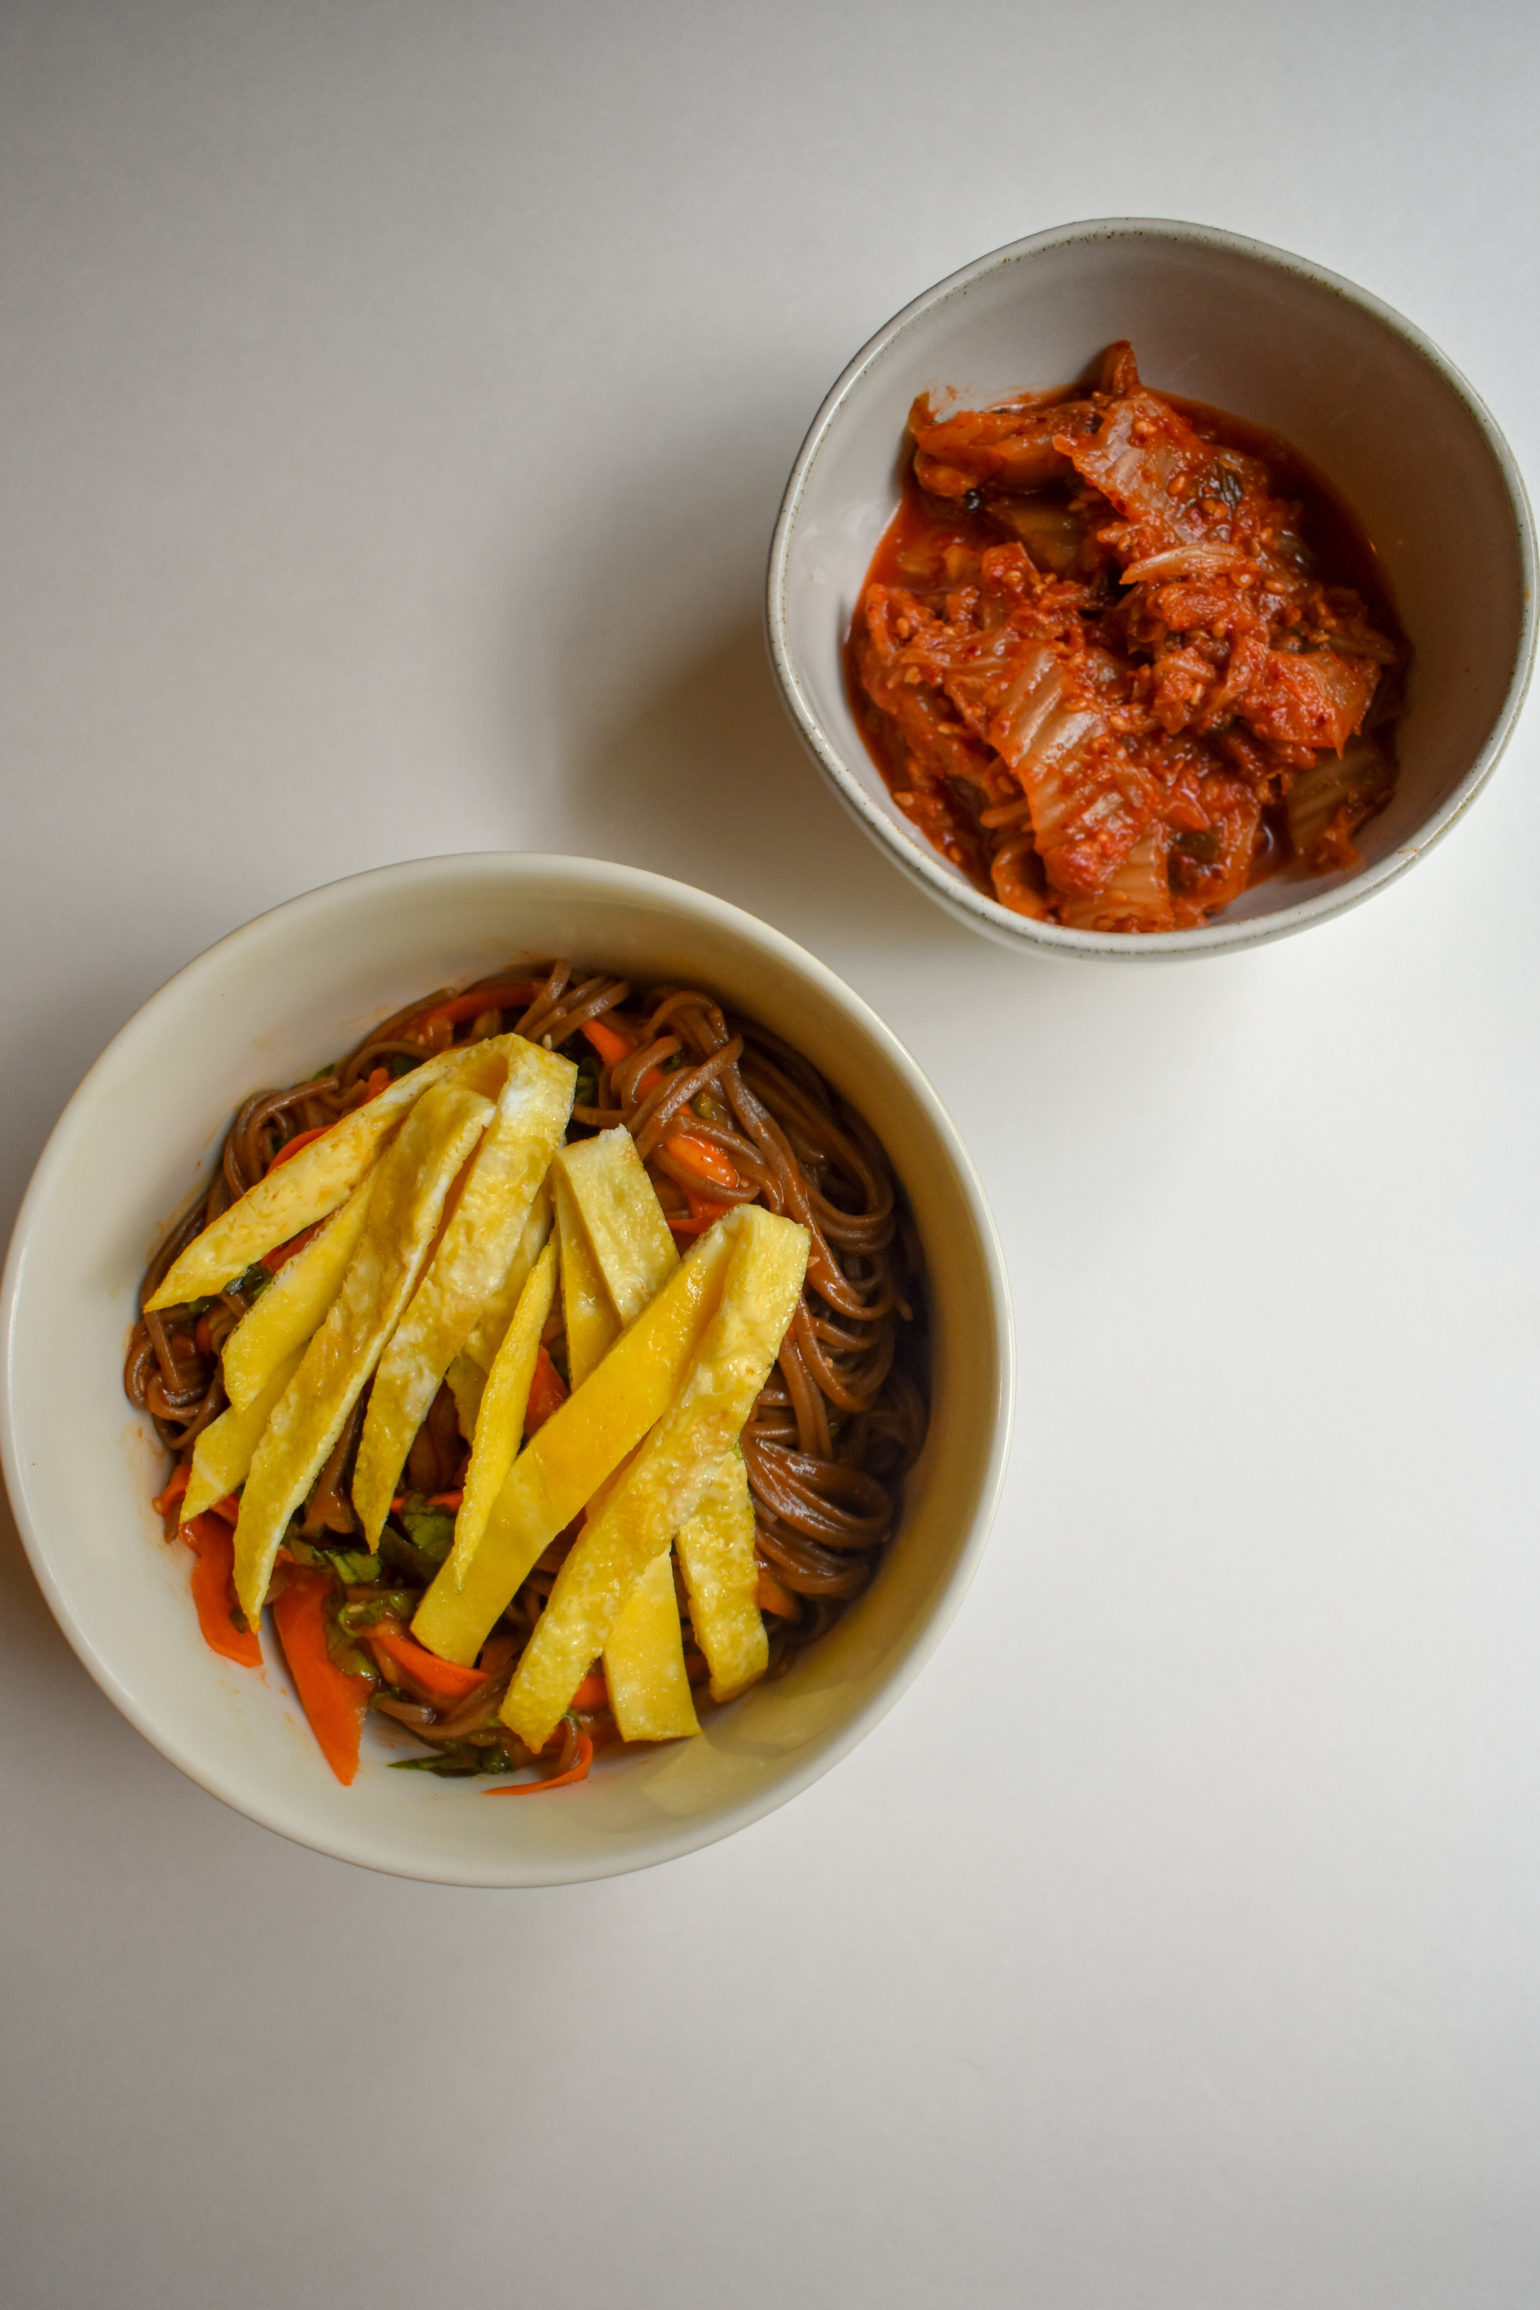 Korean cold spicy noodles with a side of kimchi